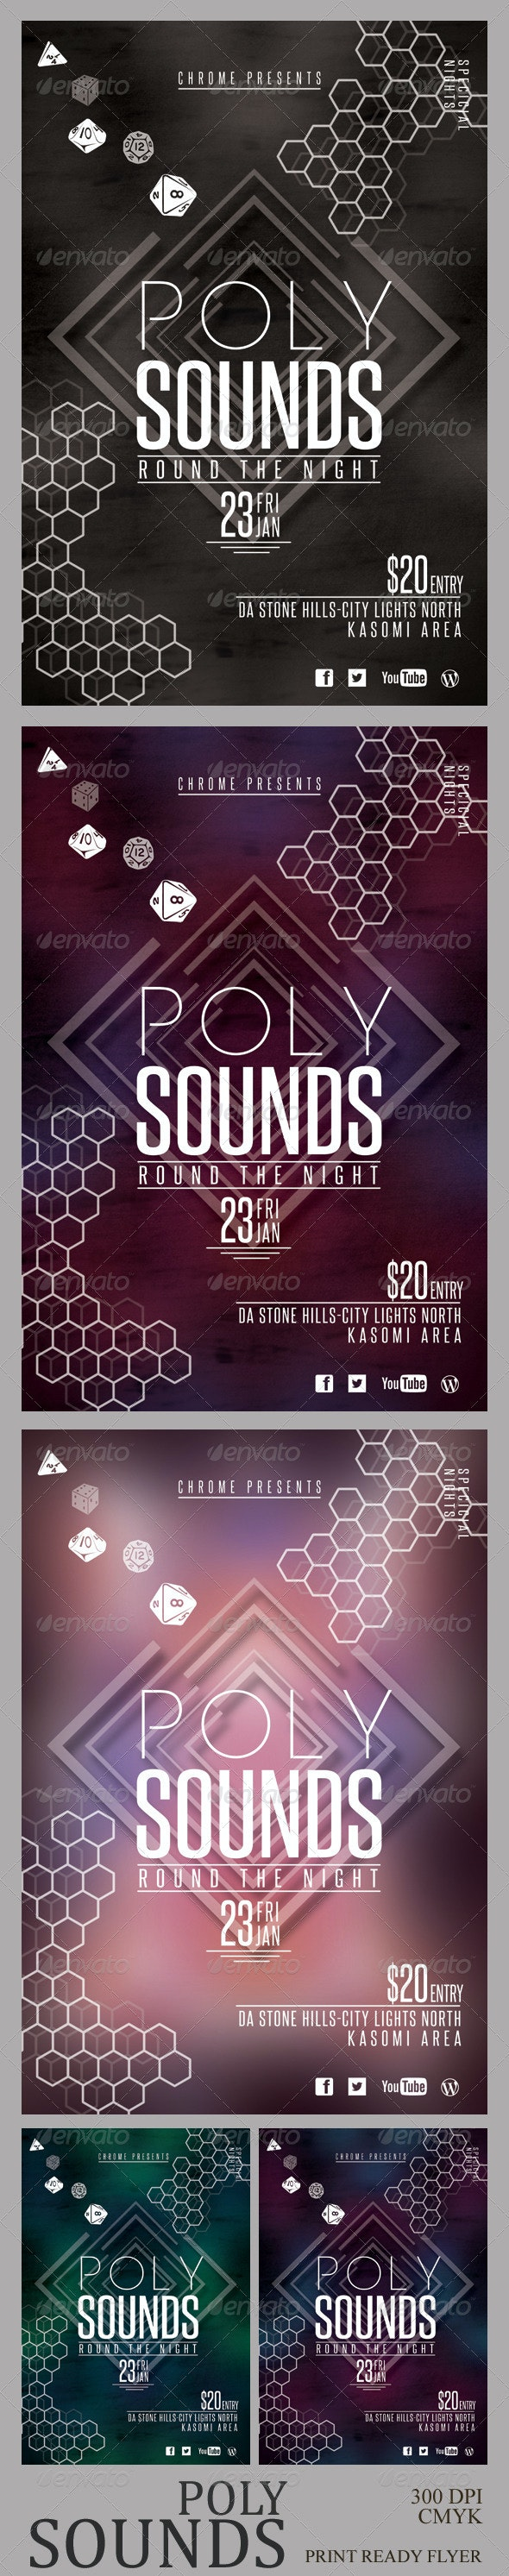 Poly Sounds Party Flyer  - Clubs & Parties Events